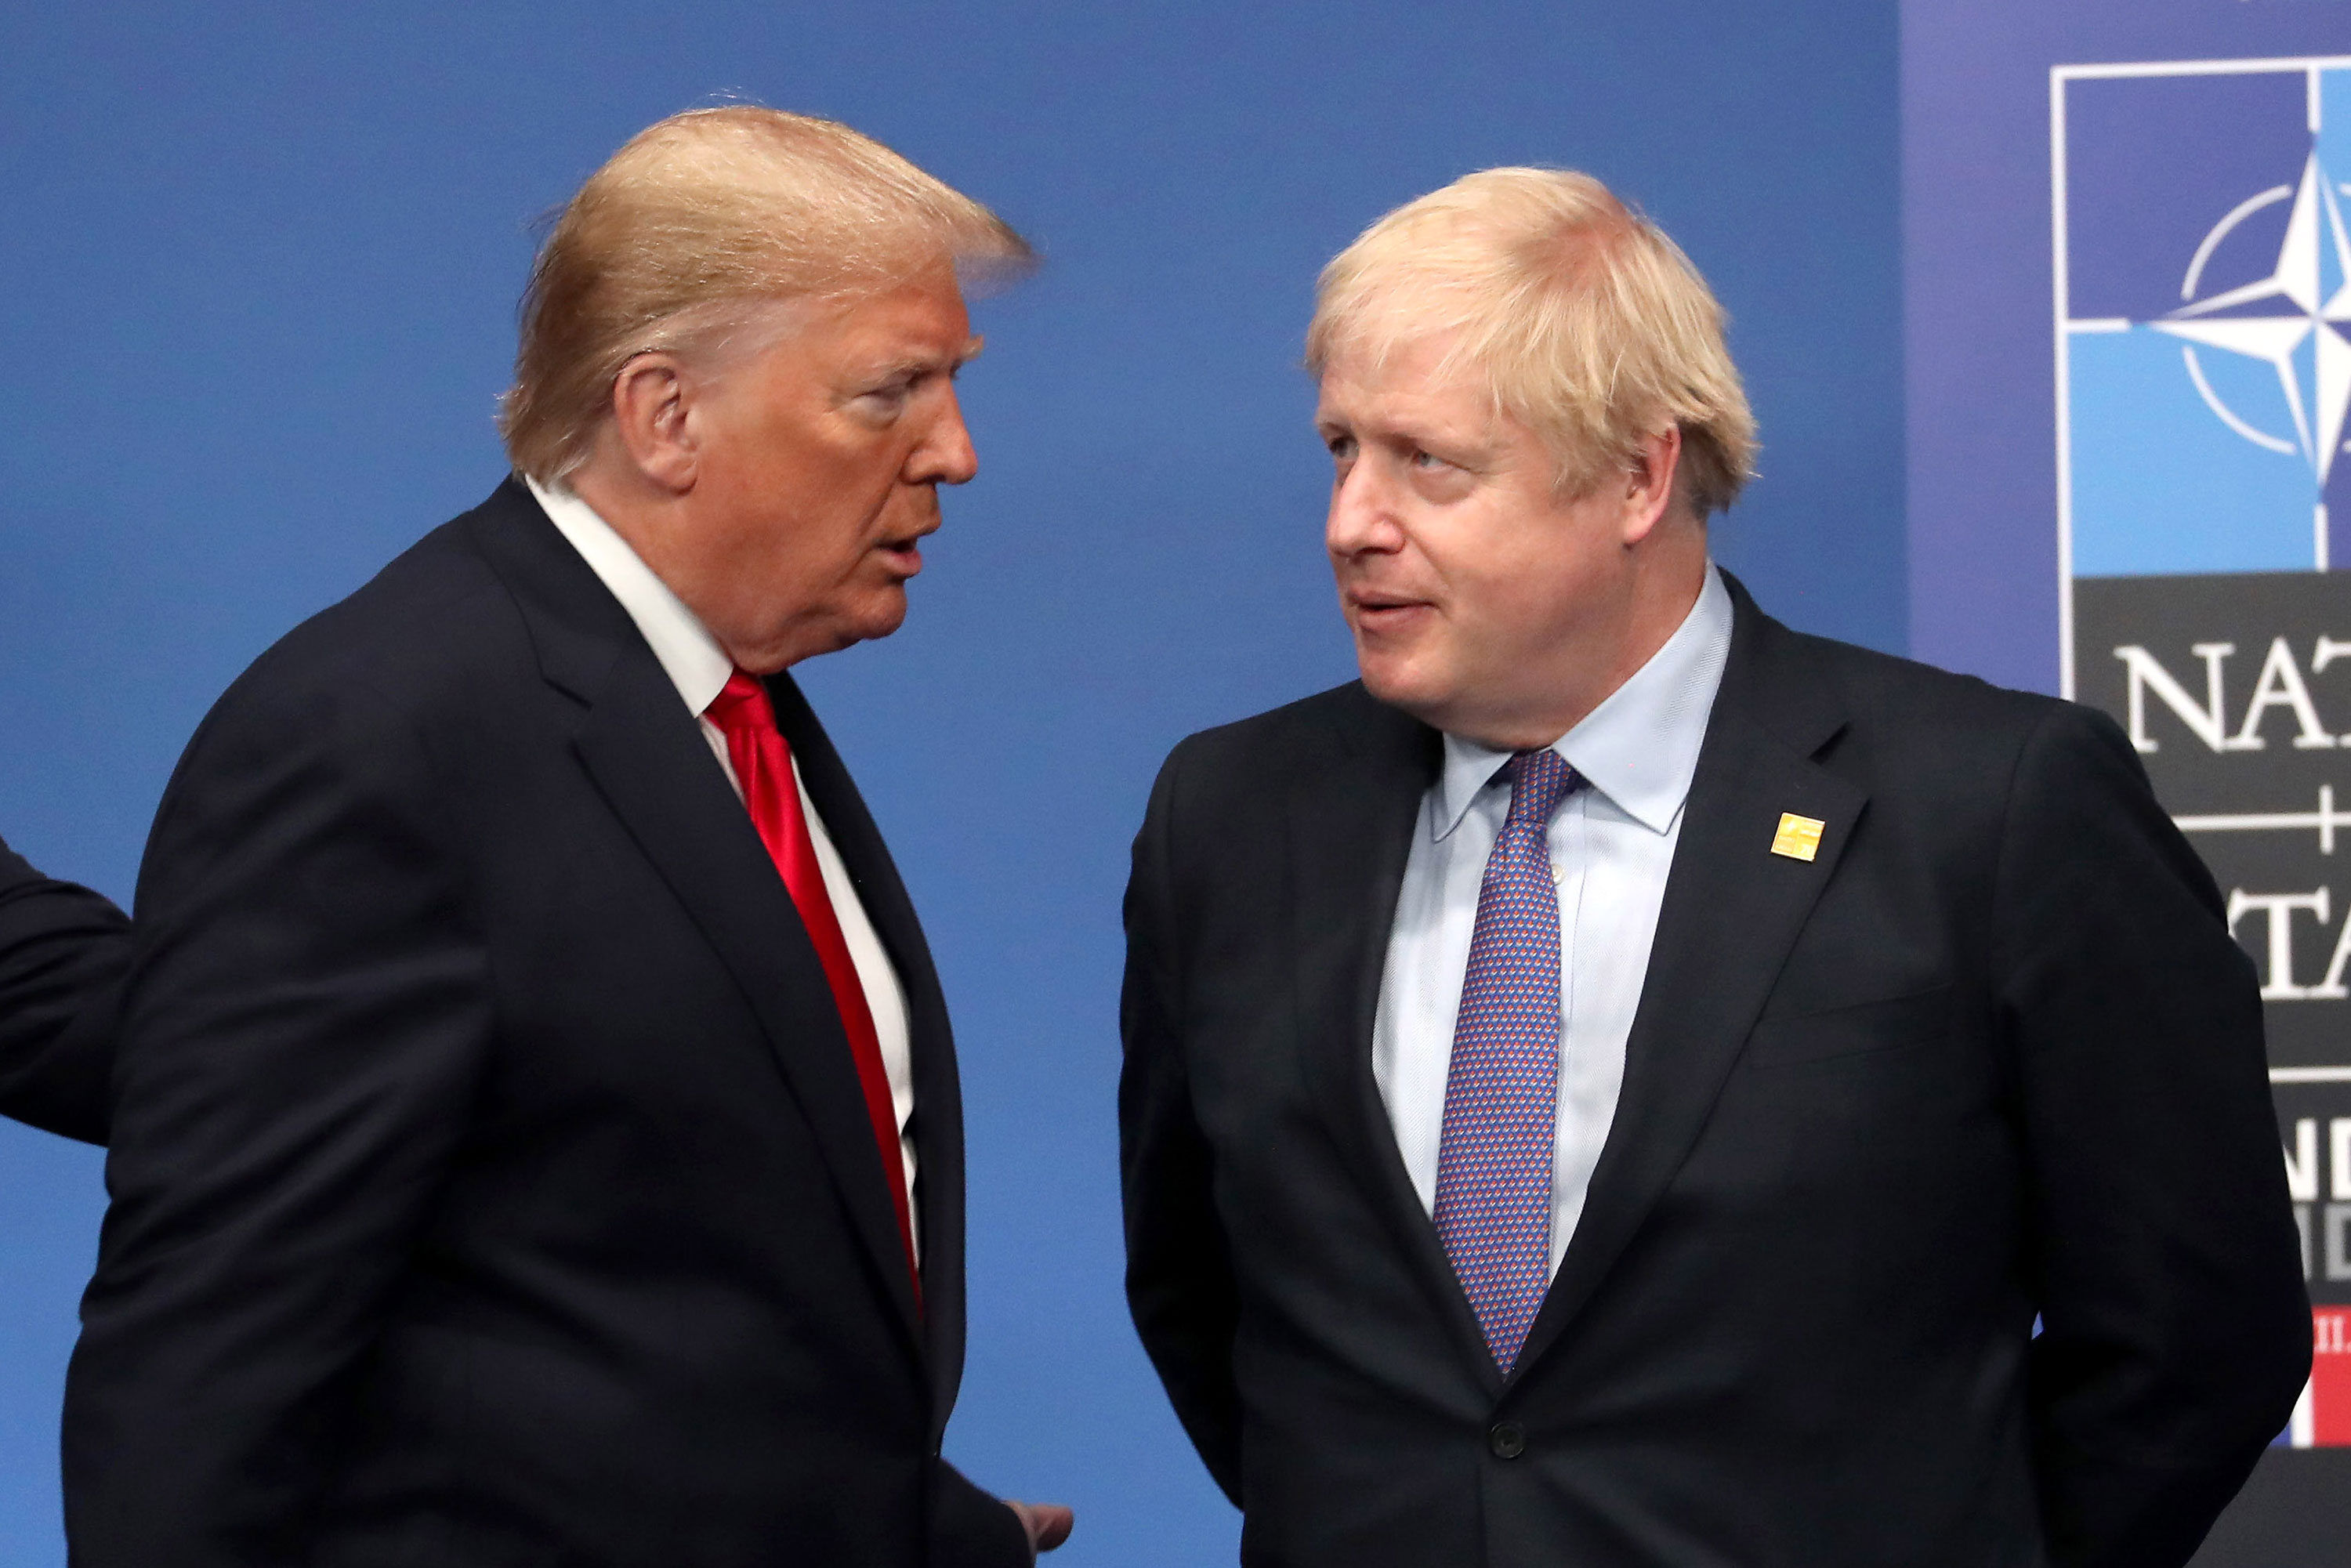 In this file photo, US President Donald Trump and British Prime Minister Boris Johnson speak during the annual NATO heads of government summit on December 4, 2019 in Watford, England.